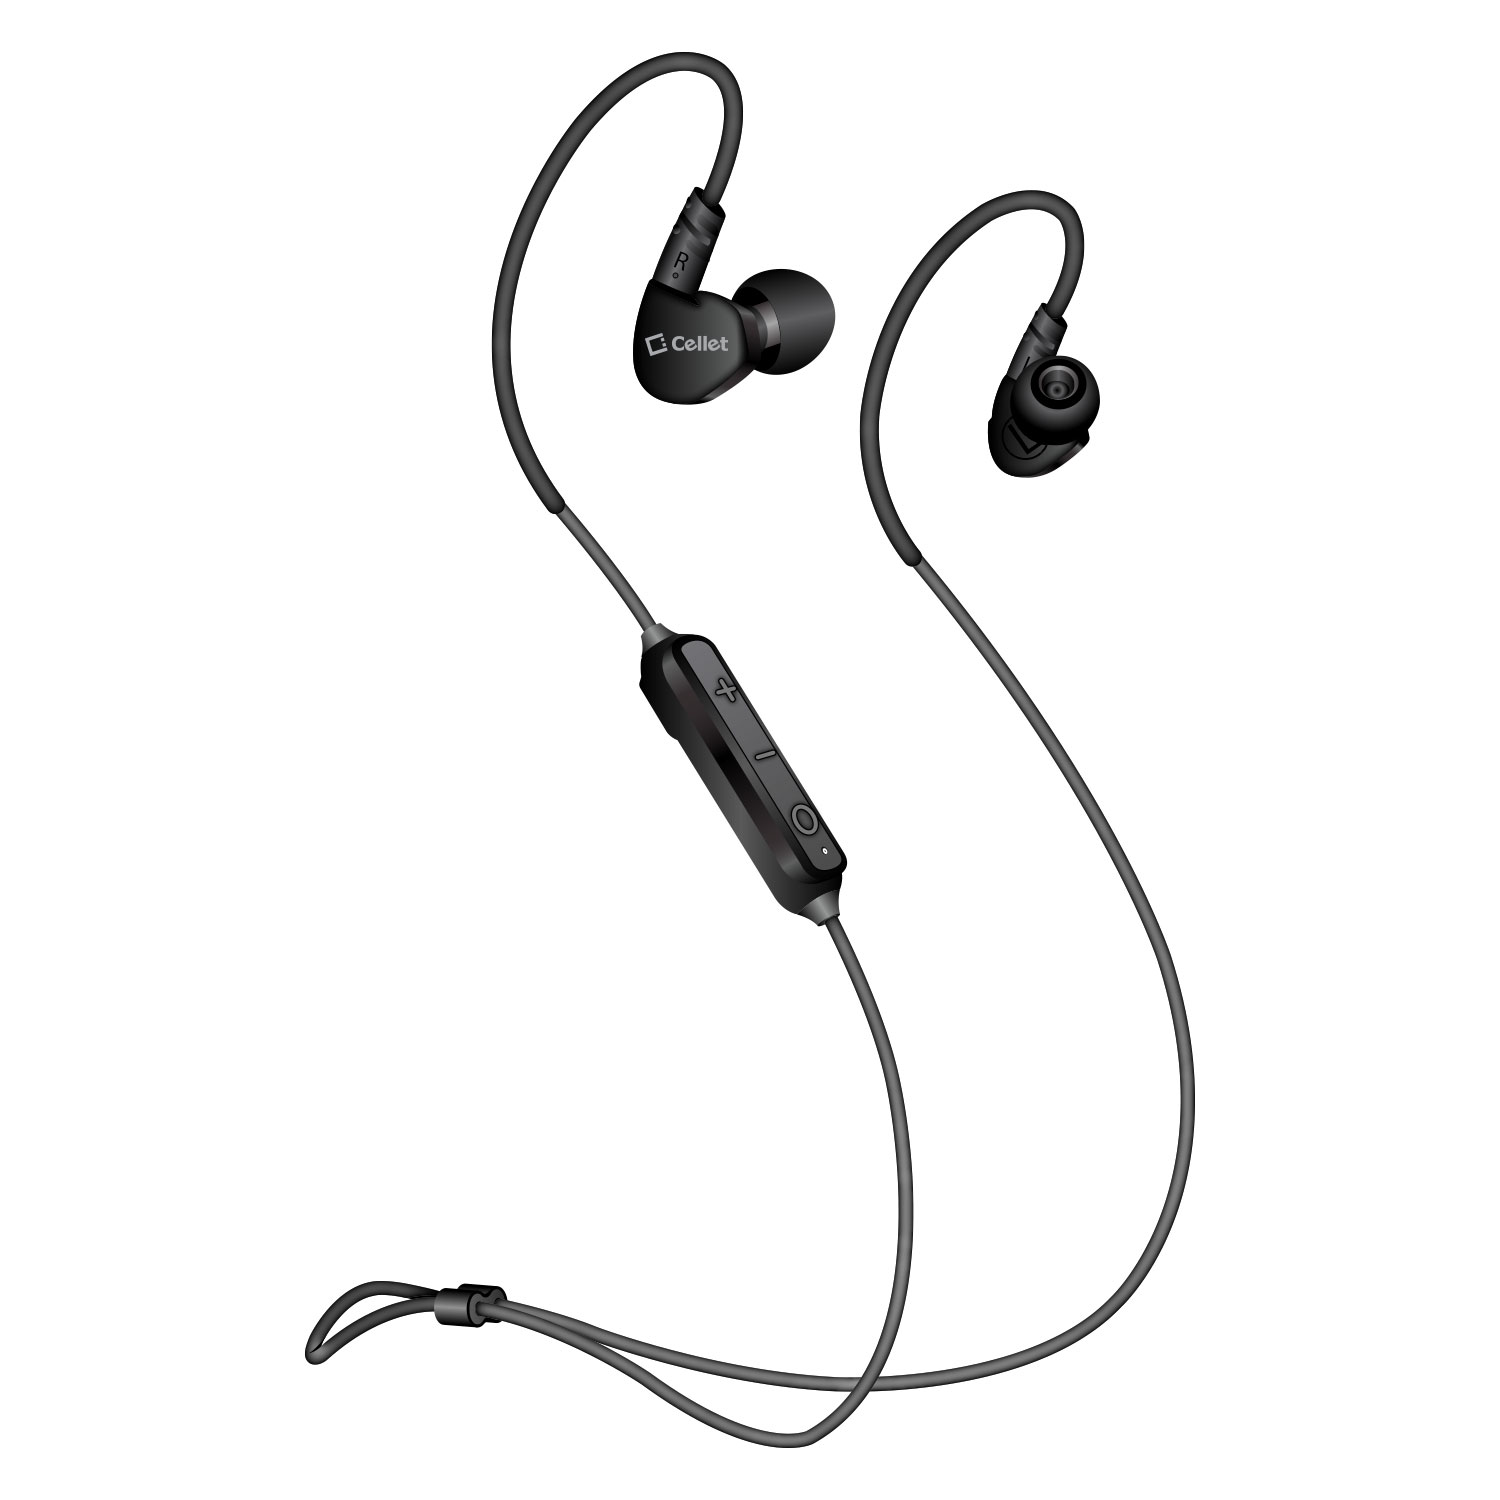 LG Q6 Bluetooth V5.0 Stereo Earphones Sport Headset Black